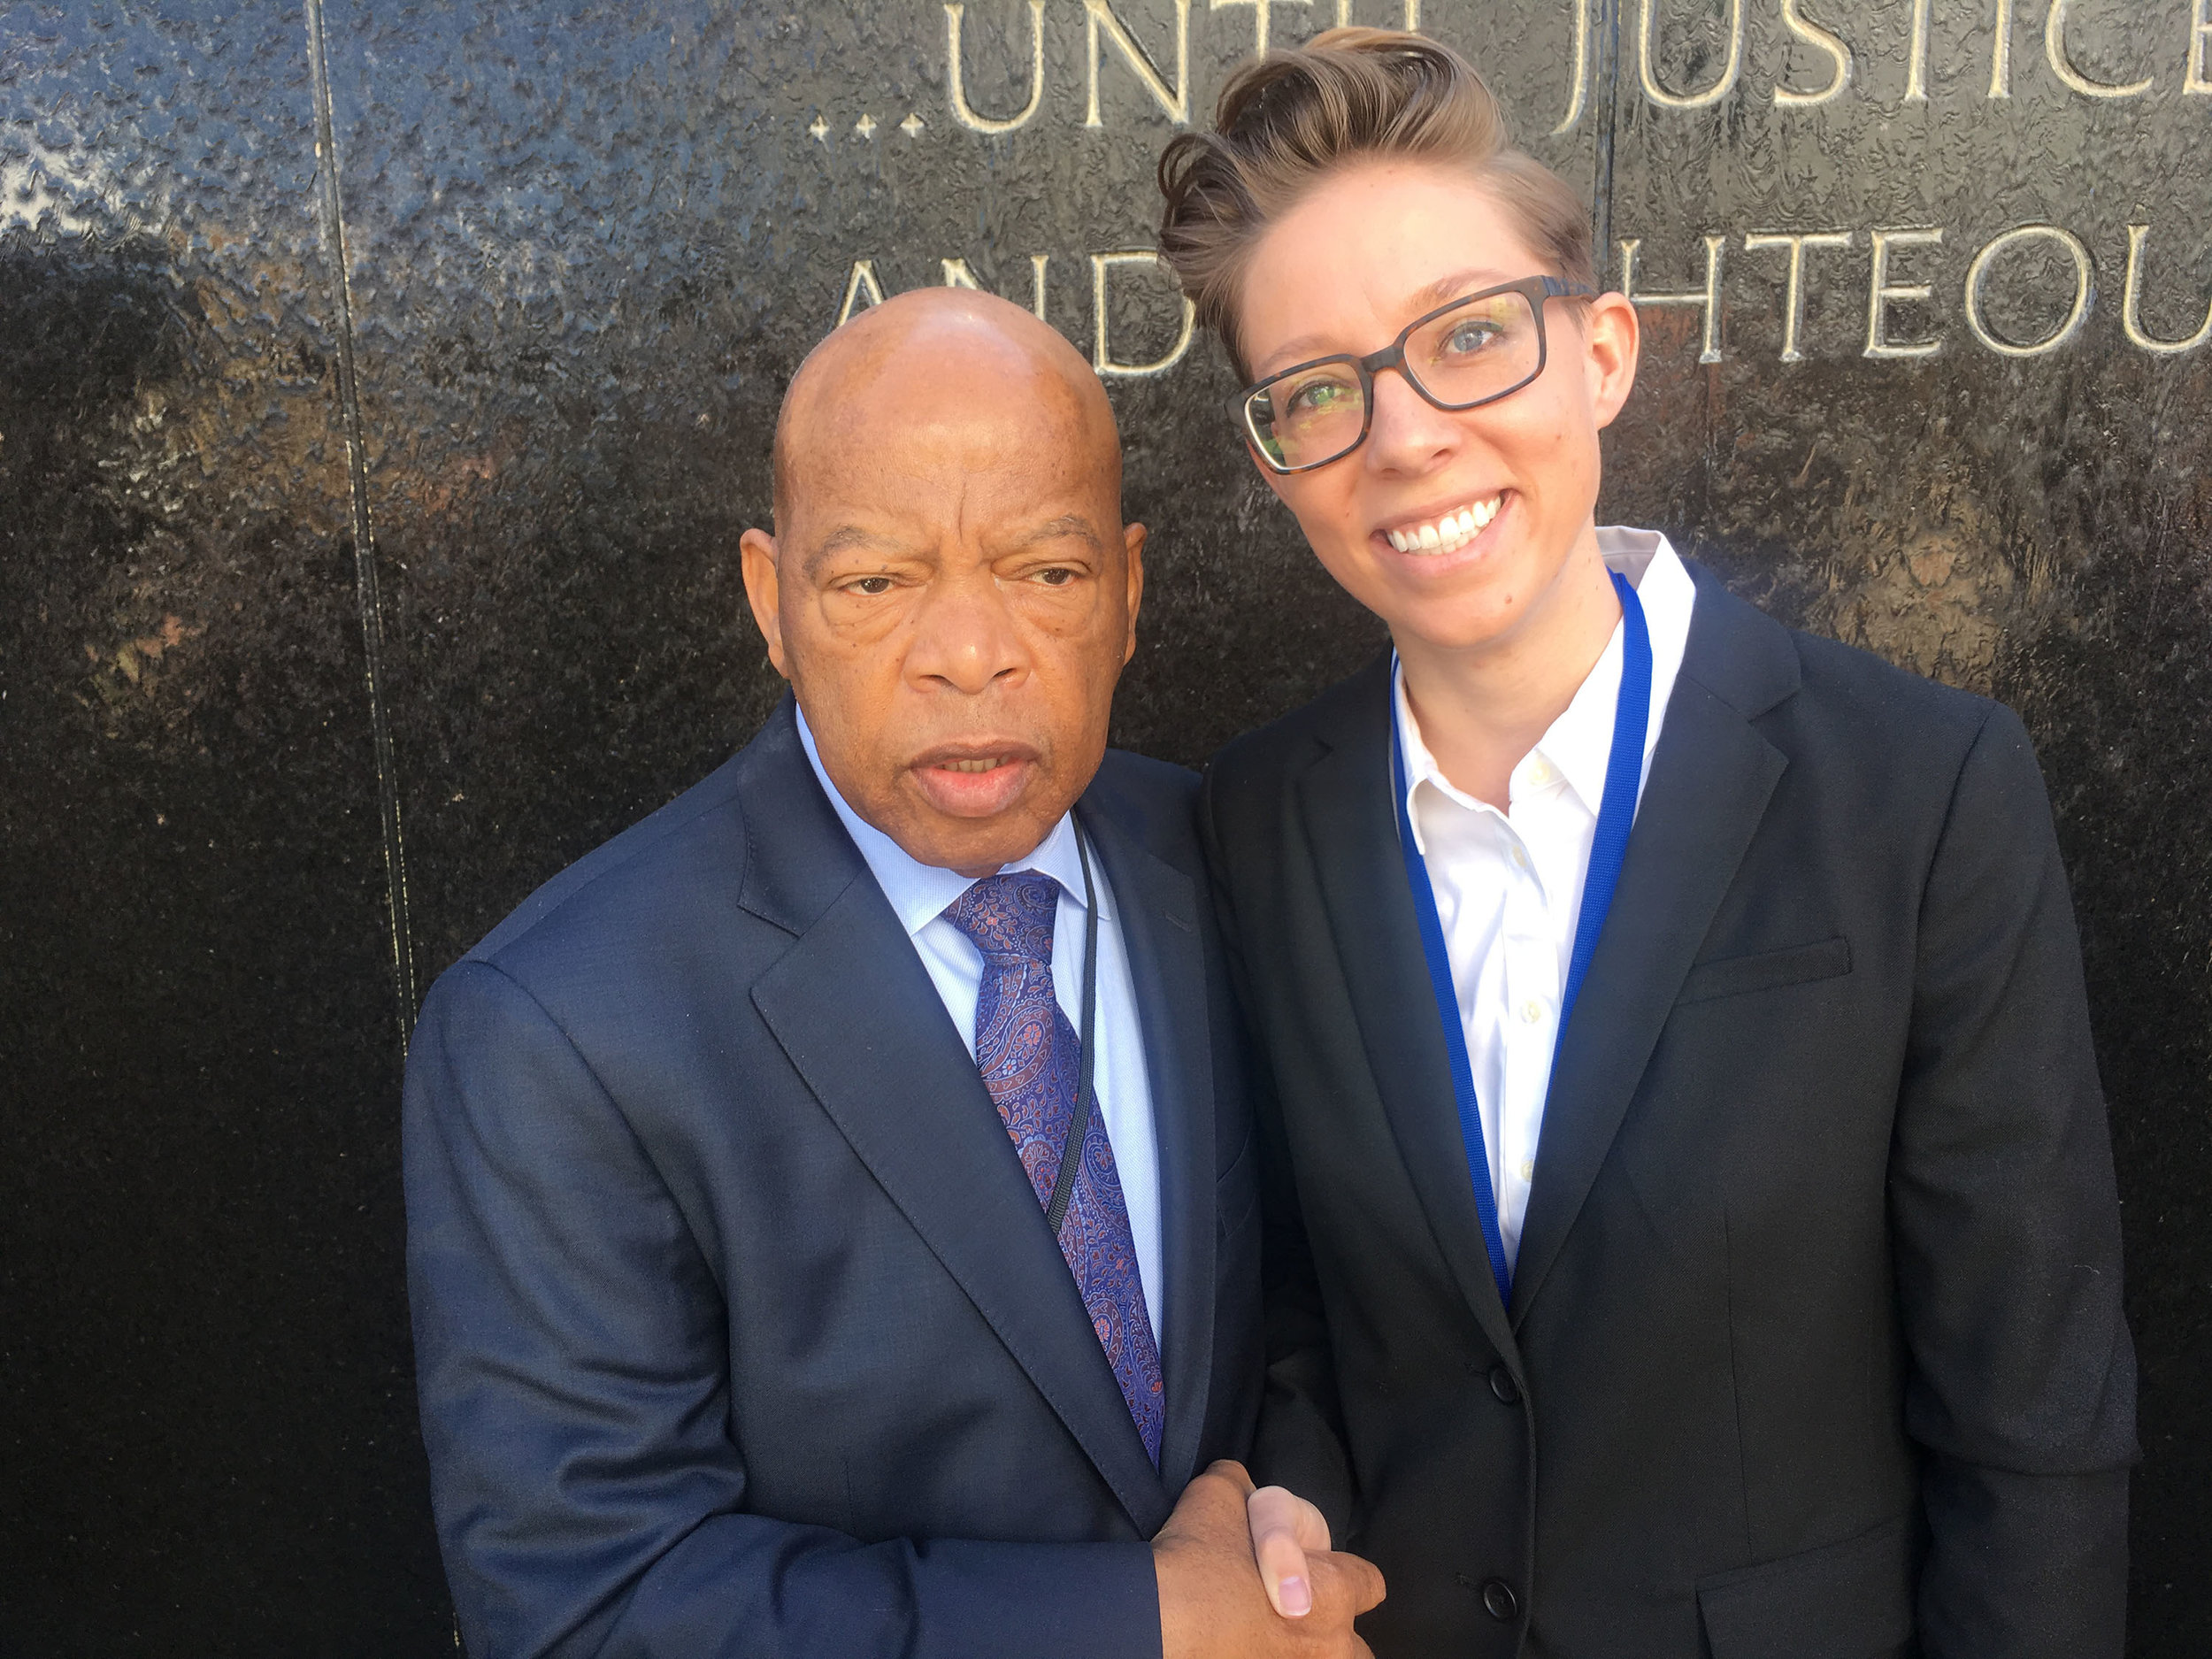 Janelle Cronk shakes hands with Rep. John Lewis at the Civil Rights Memorial Center in Montgomery, Alabama, Saturday, March 3, 2018.